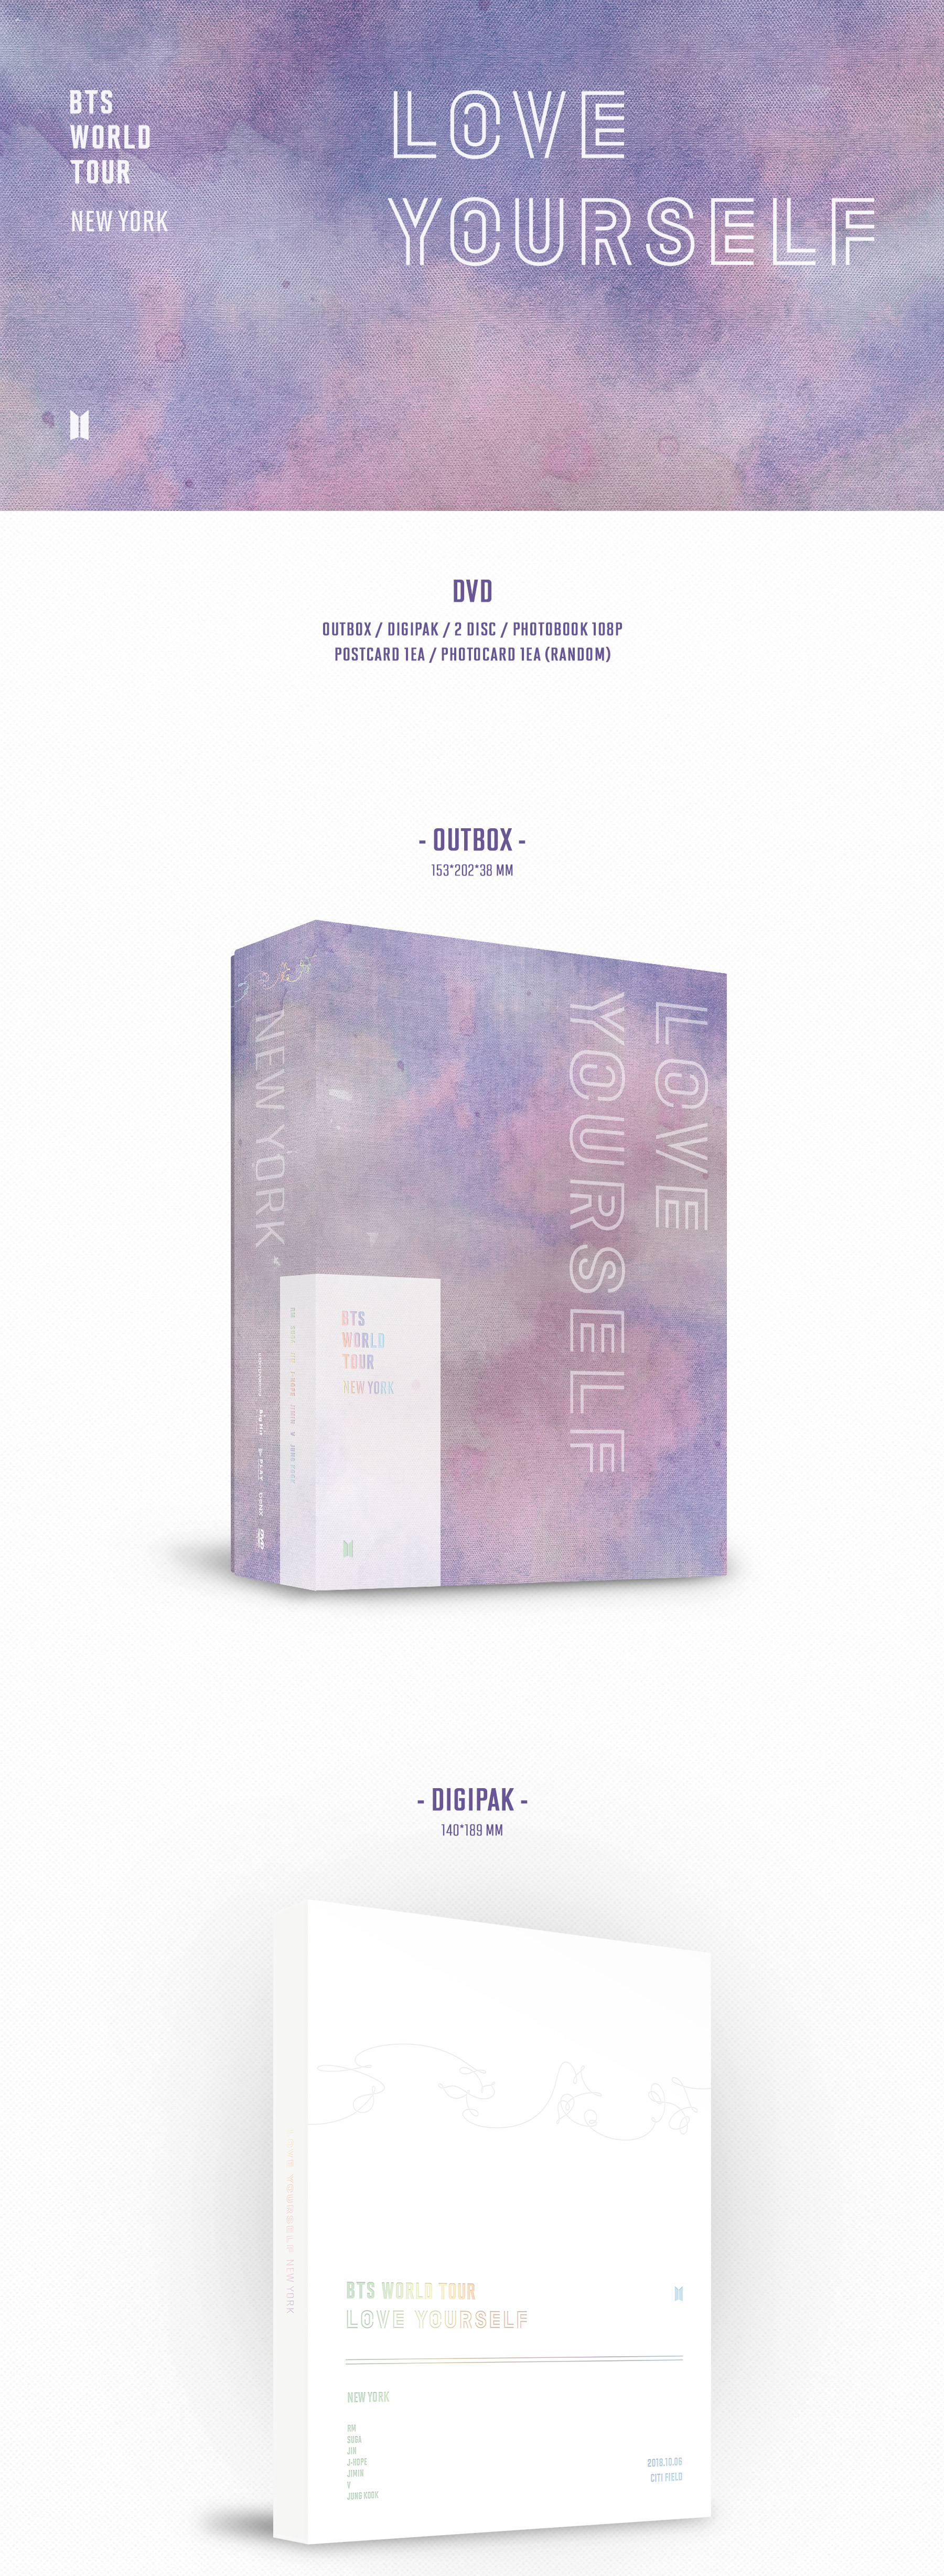 Bts love yourself tour dvd